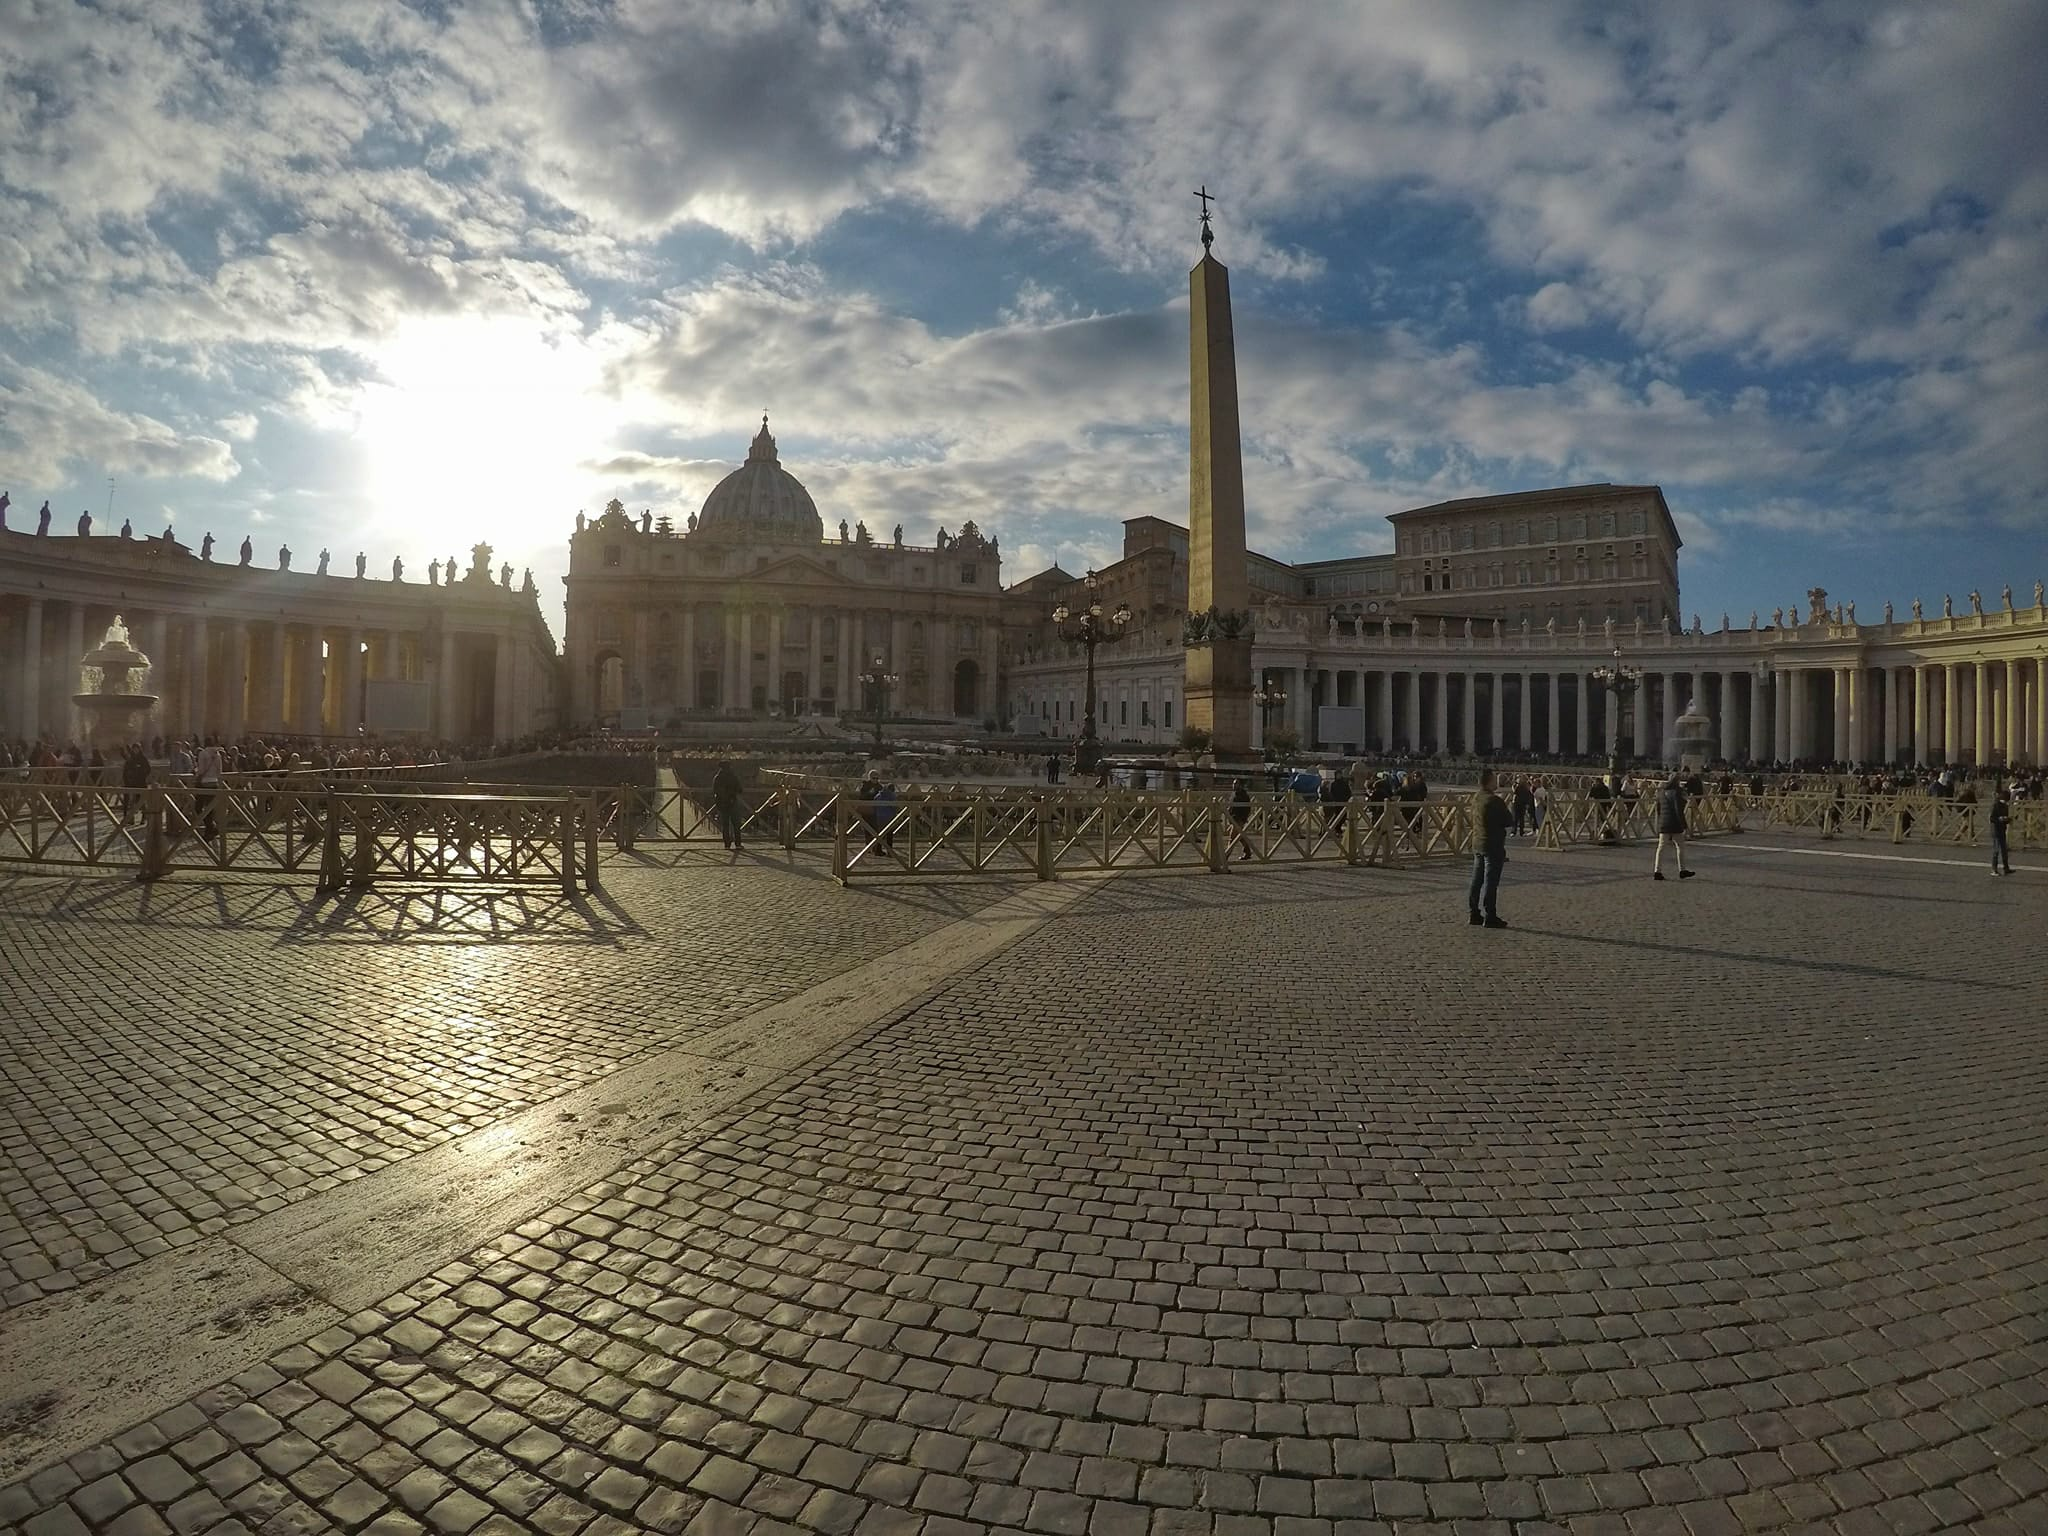 Places to visit in Rome Italy in 4 days - St. Peter's Basilica and Square